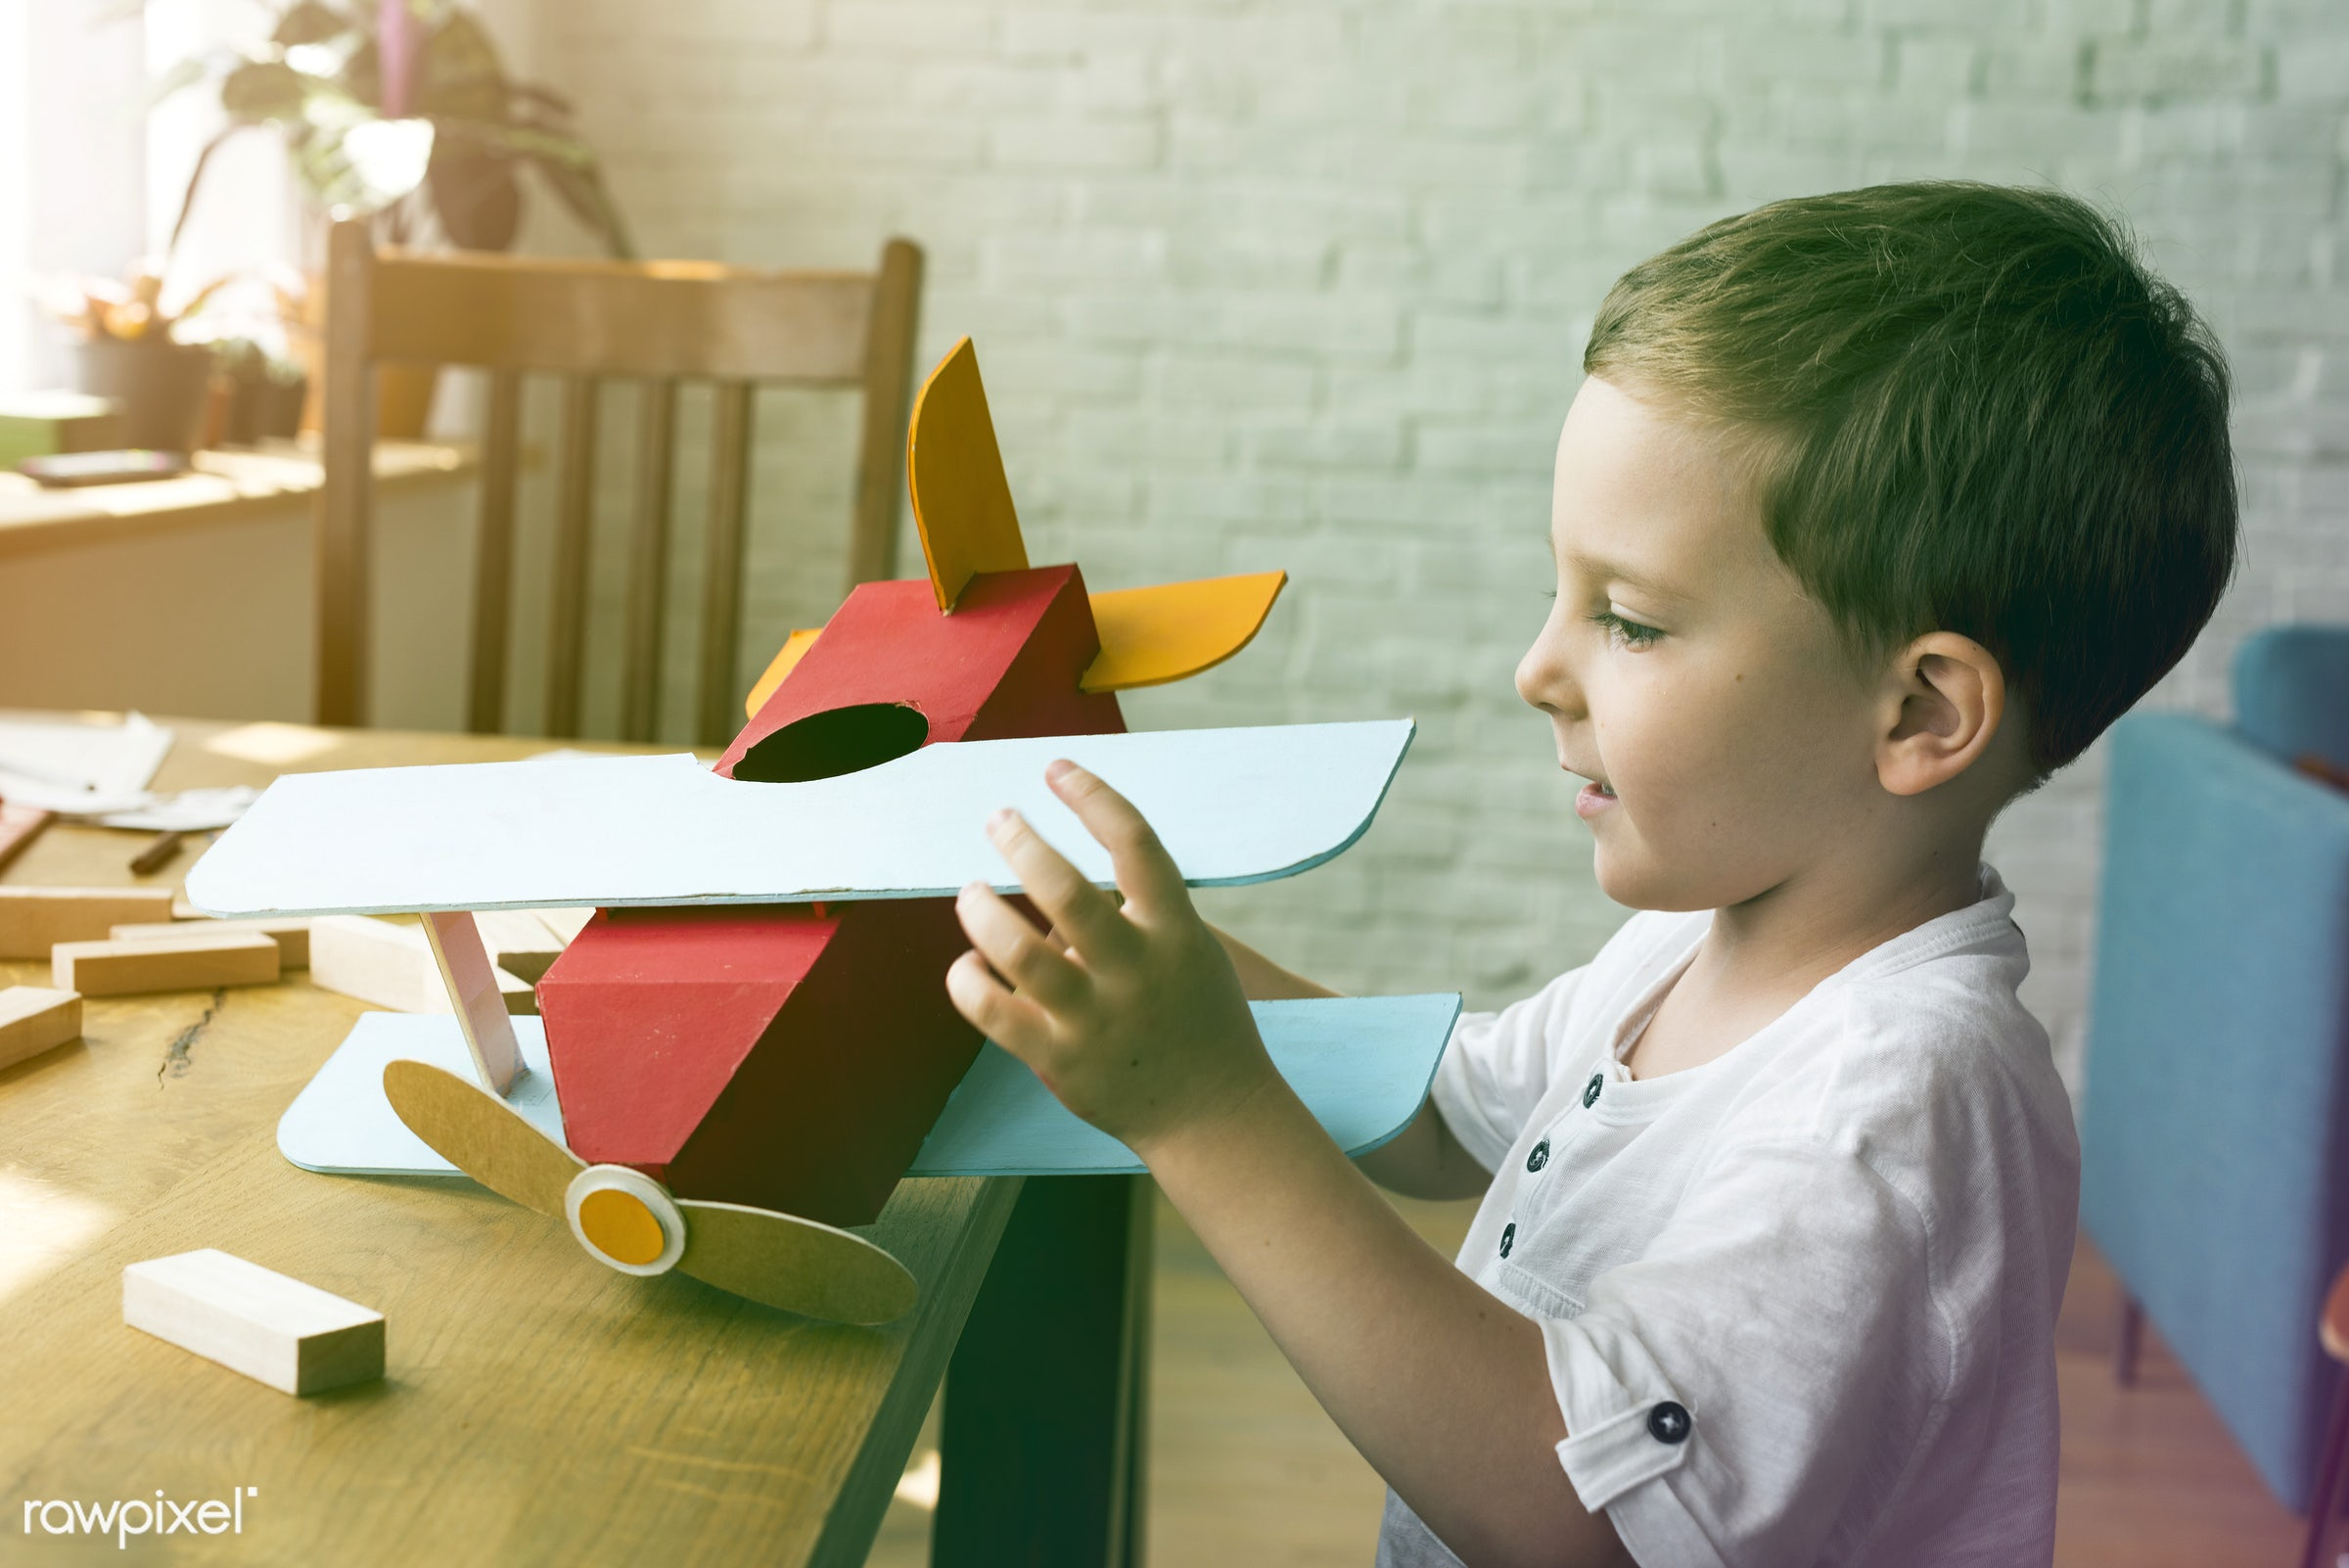 home, person, holding, indoors, travel, object, house, recreation, imagination, kid, caucasian, playing, child, aviation,...